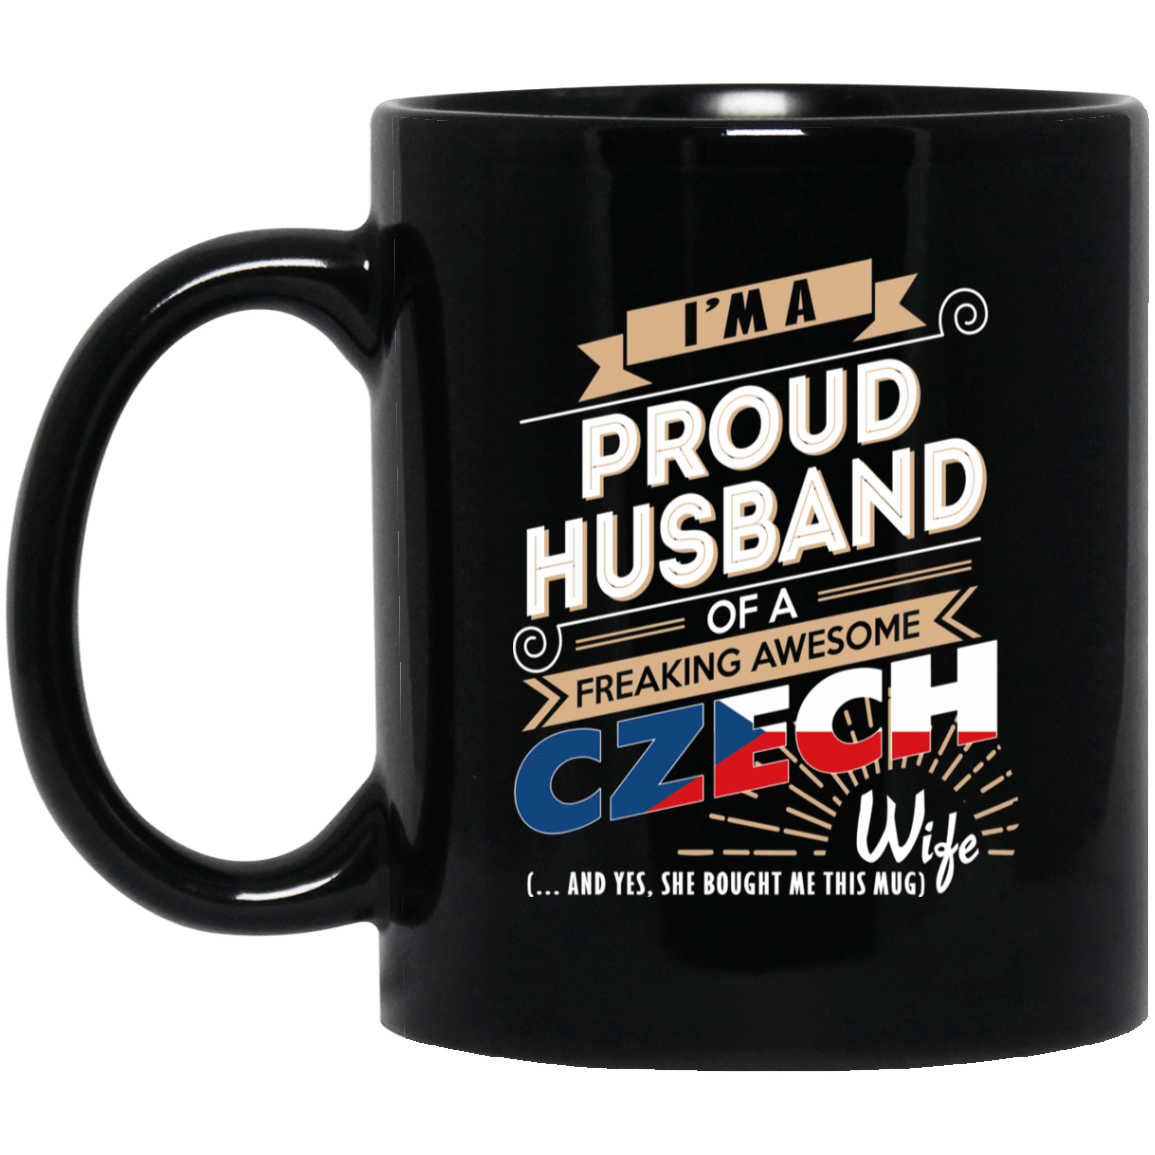 Proud Husband Of A Freaking Awesome Czech Wife Mug 1065-10181-72136595-49307 - Tee Ript